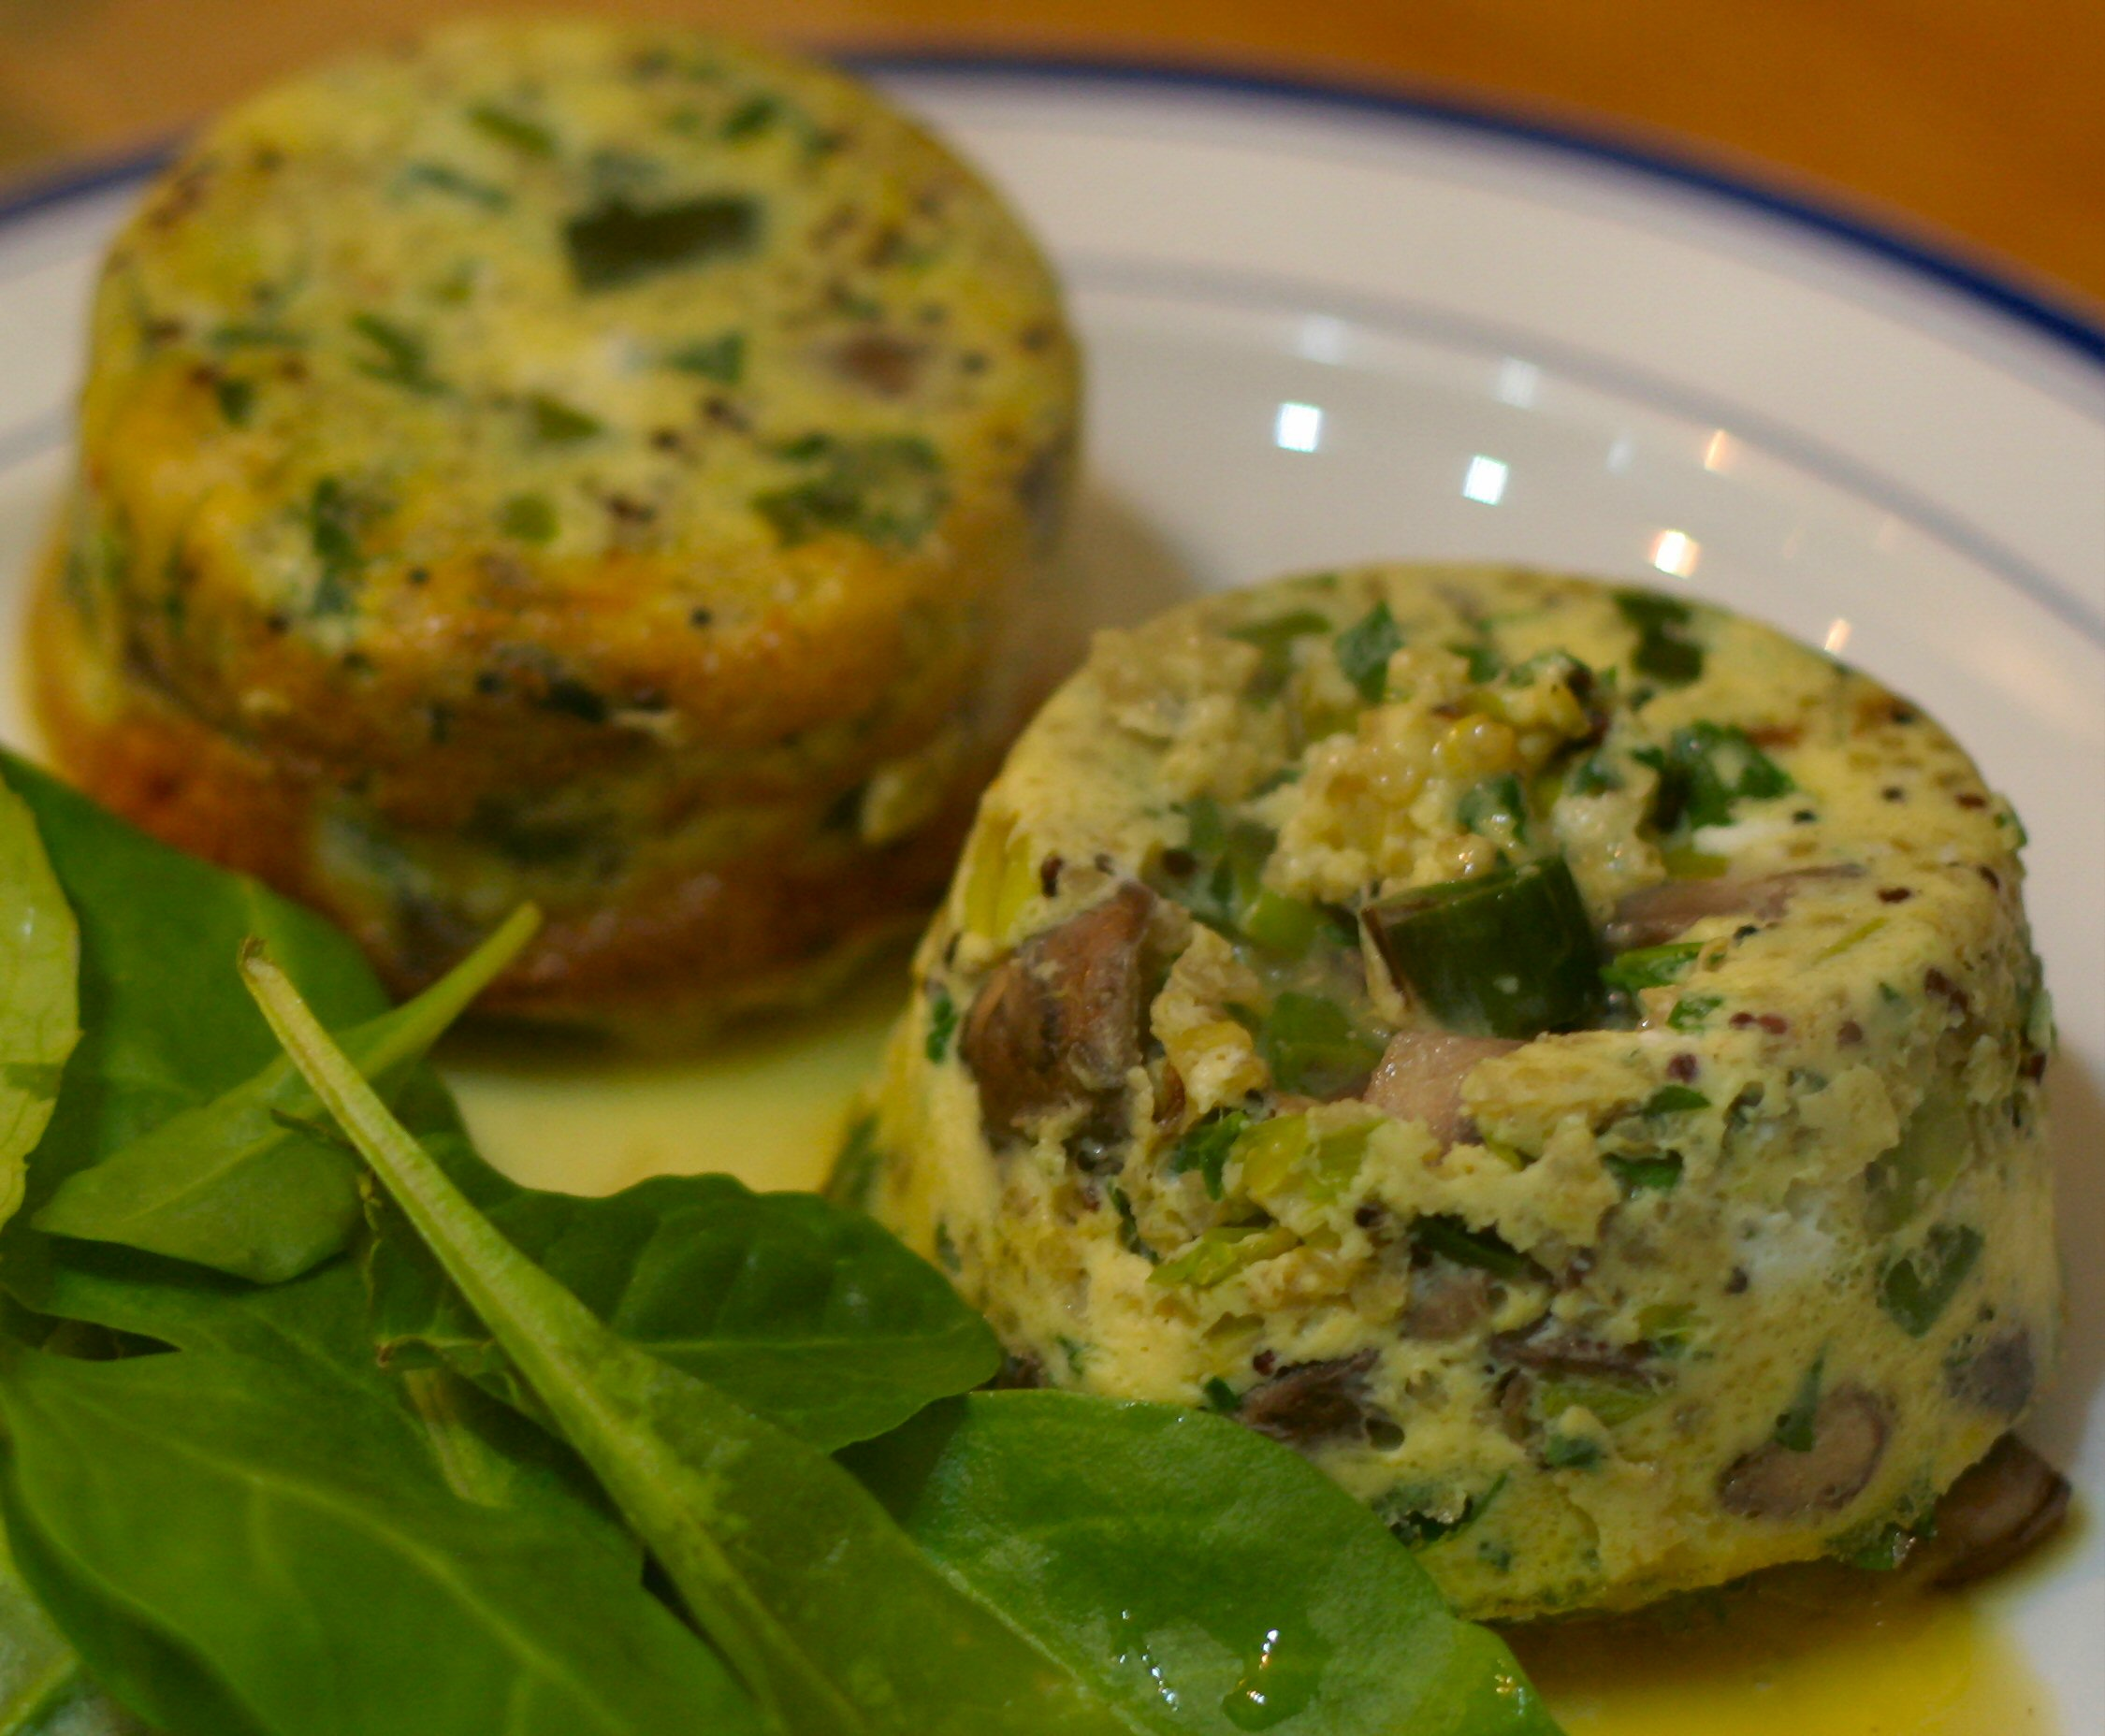 Leek & mushroom frittatas with salad leaves